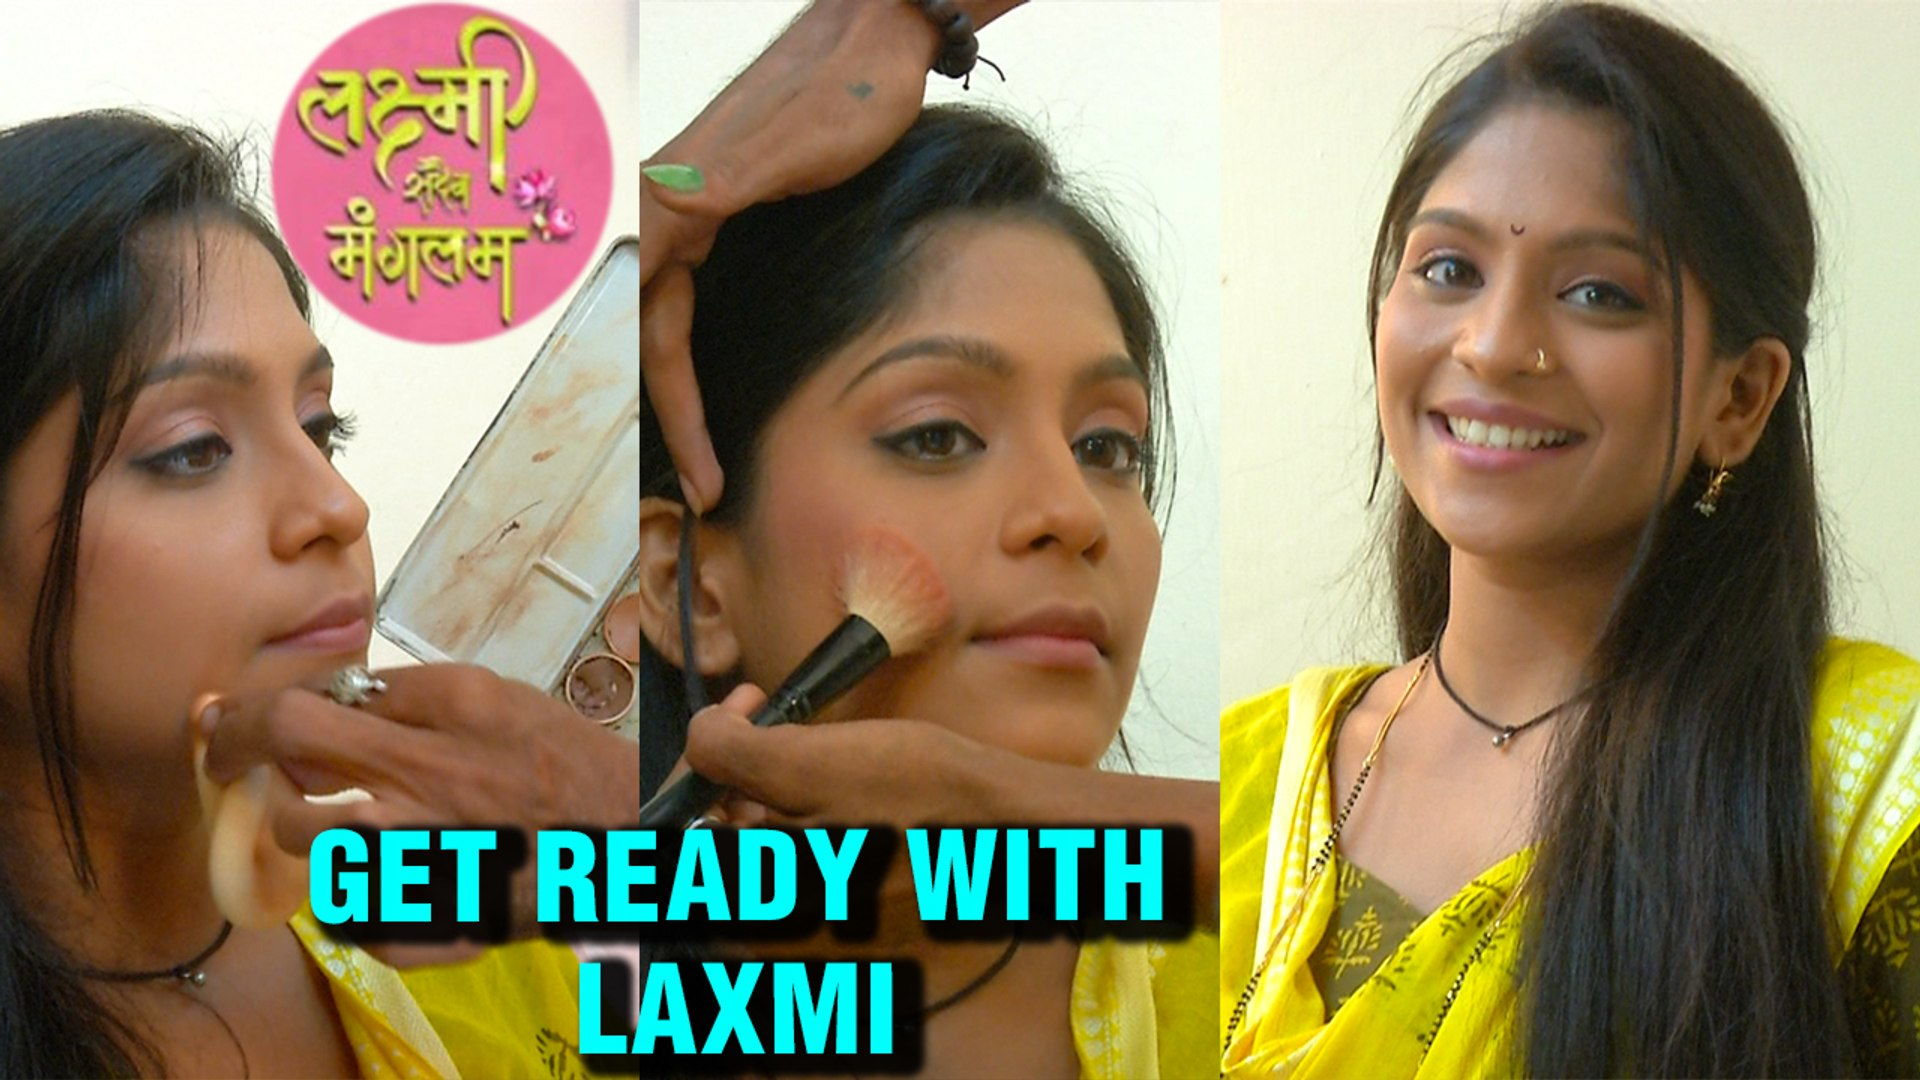 Laxmi Sadaiva Mangalam | Get Ready with Laxmi | Colors Marathi